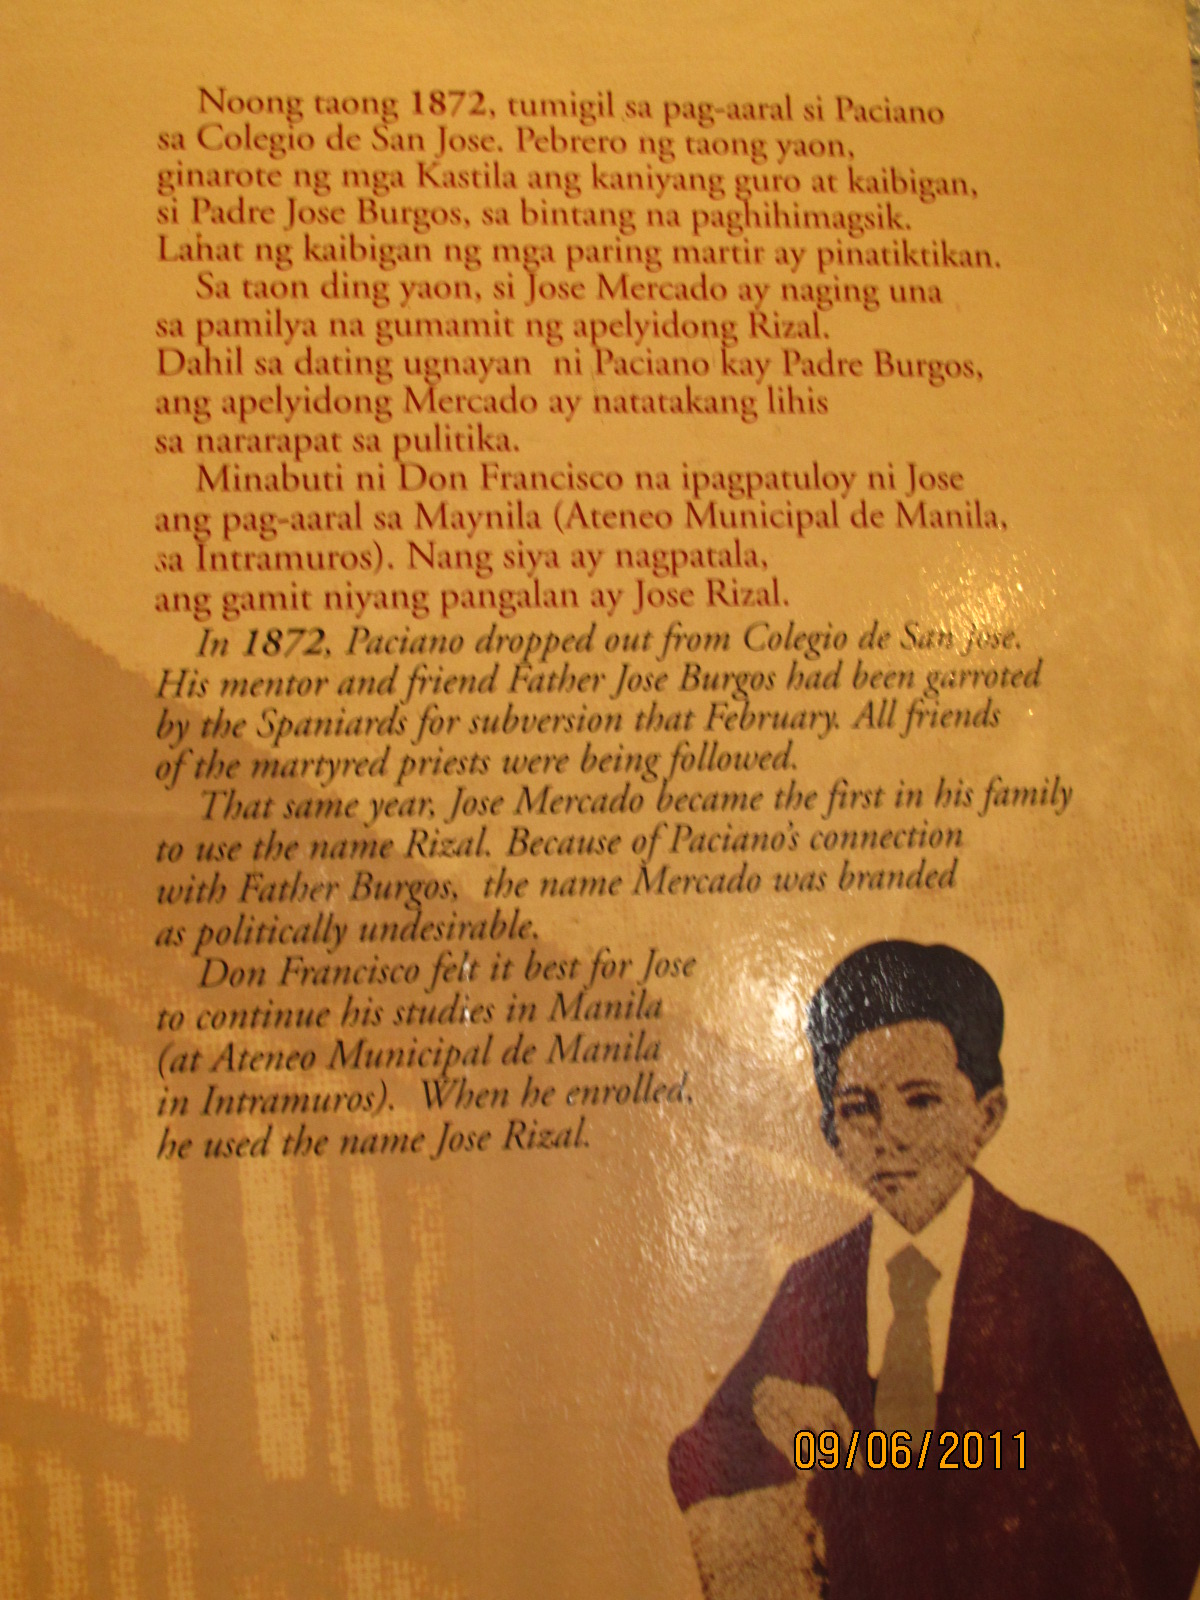 jose rizal first poem